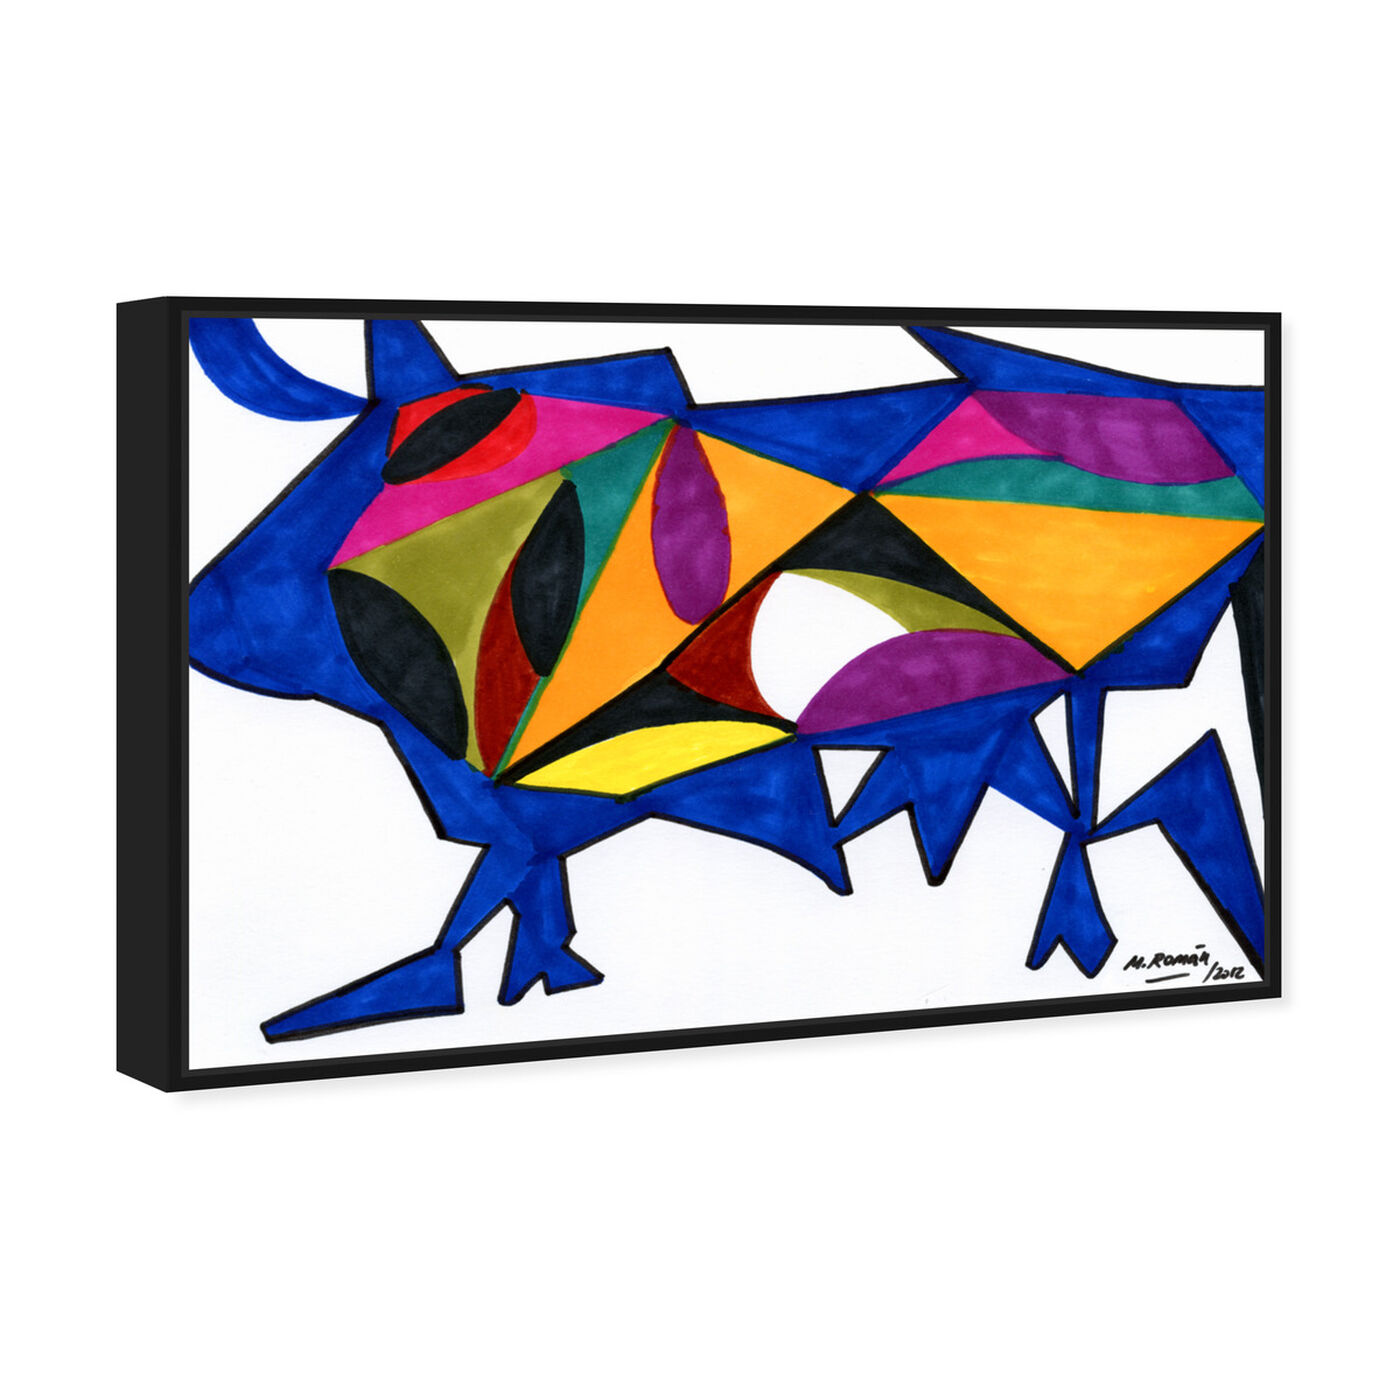 Angled view of Bull Sunrise featuring abstract and shapes art.